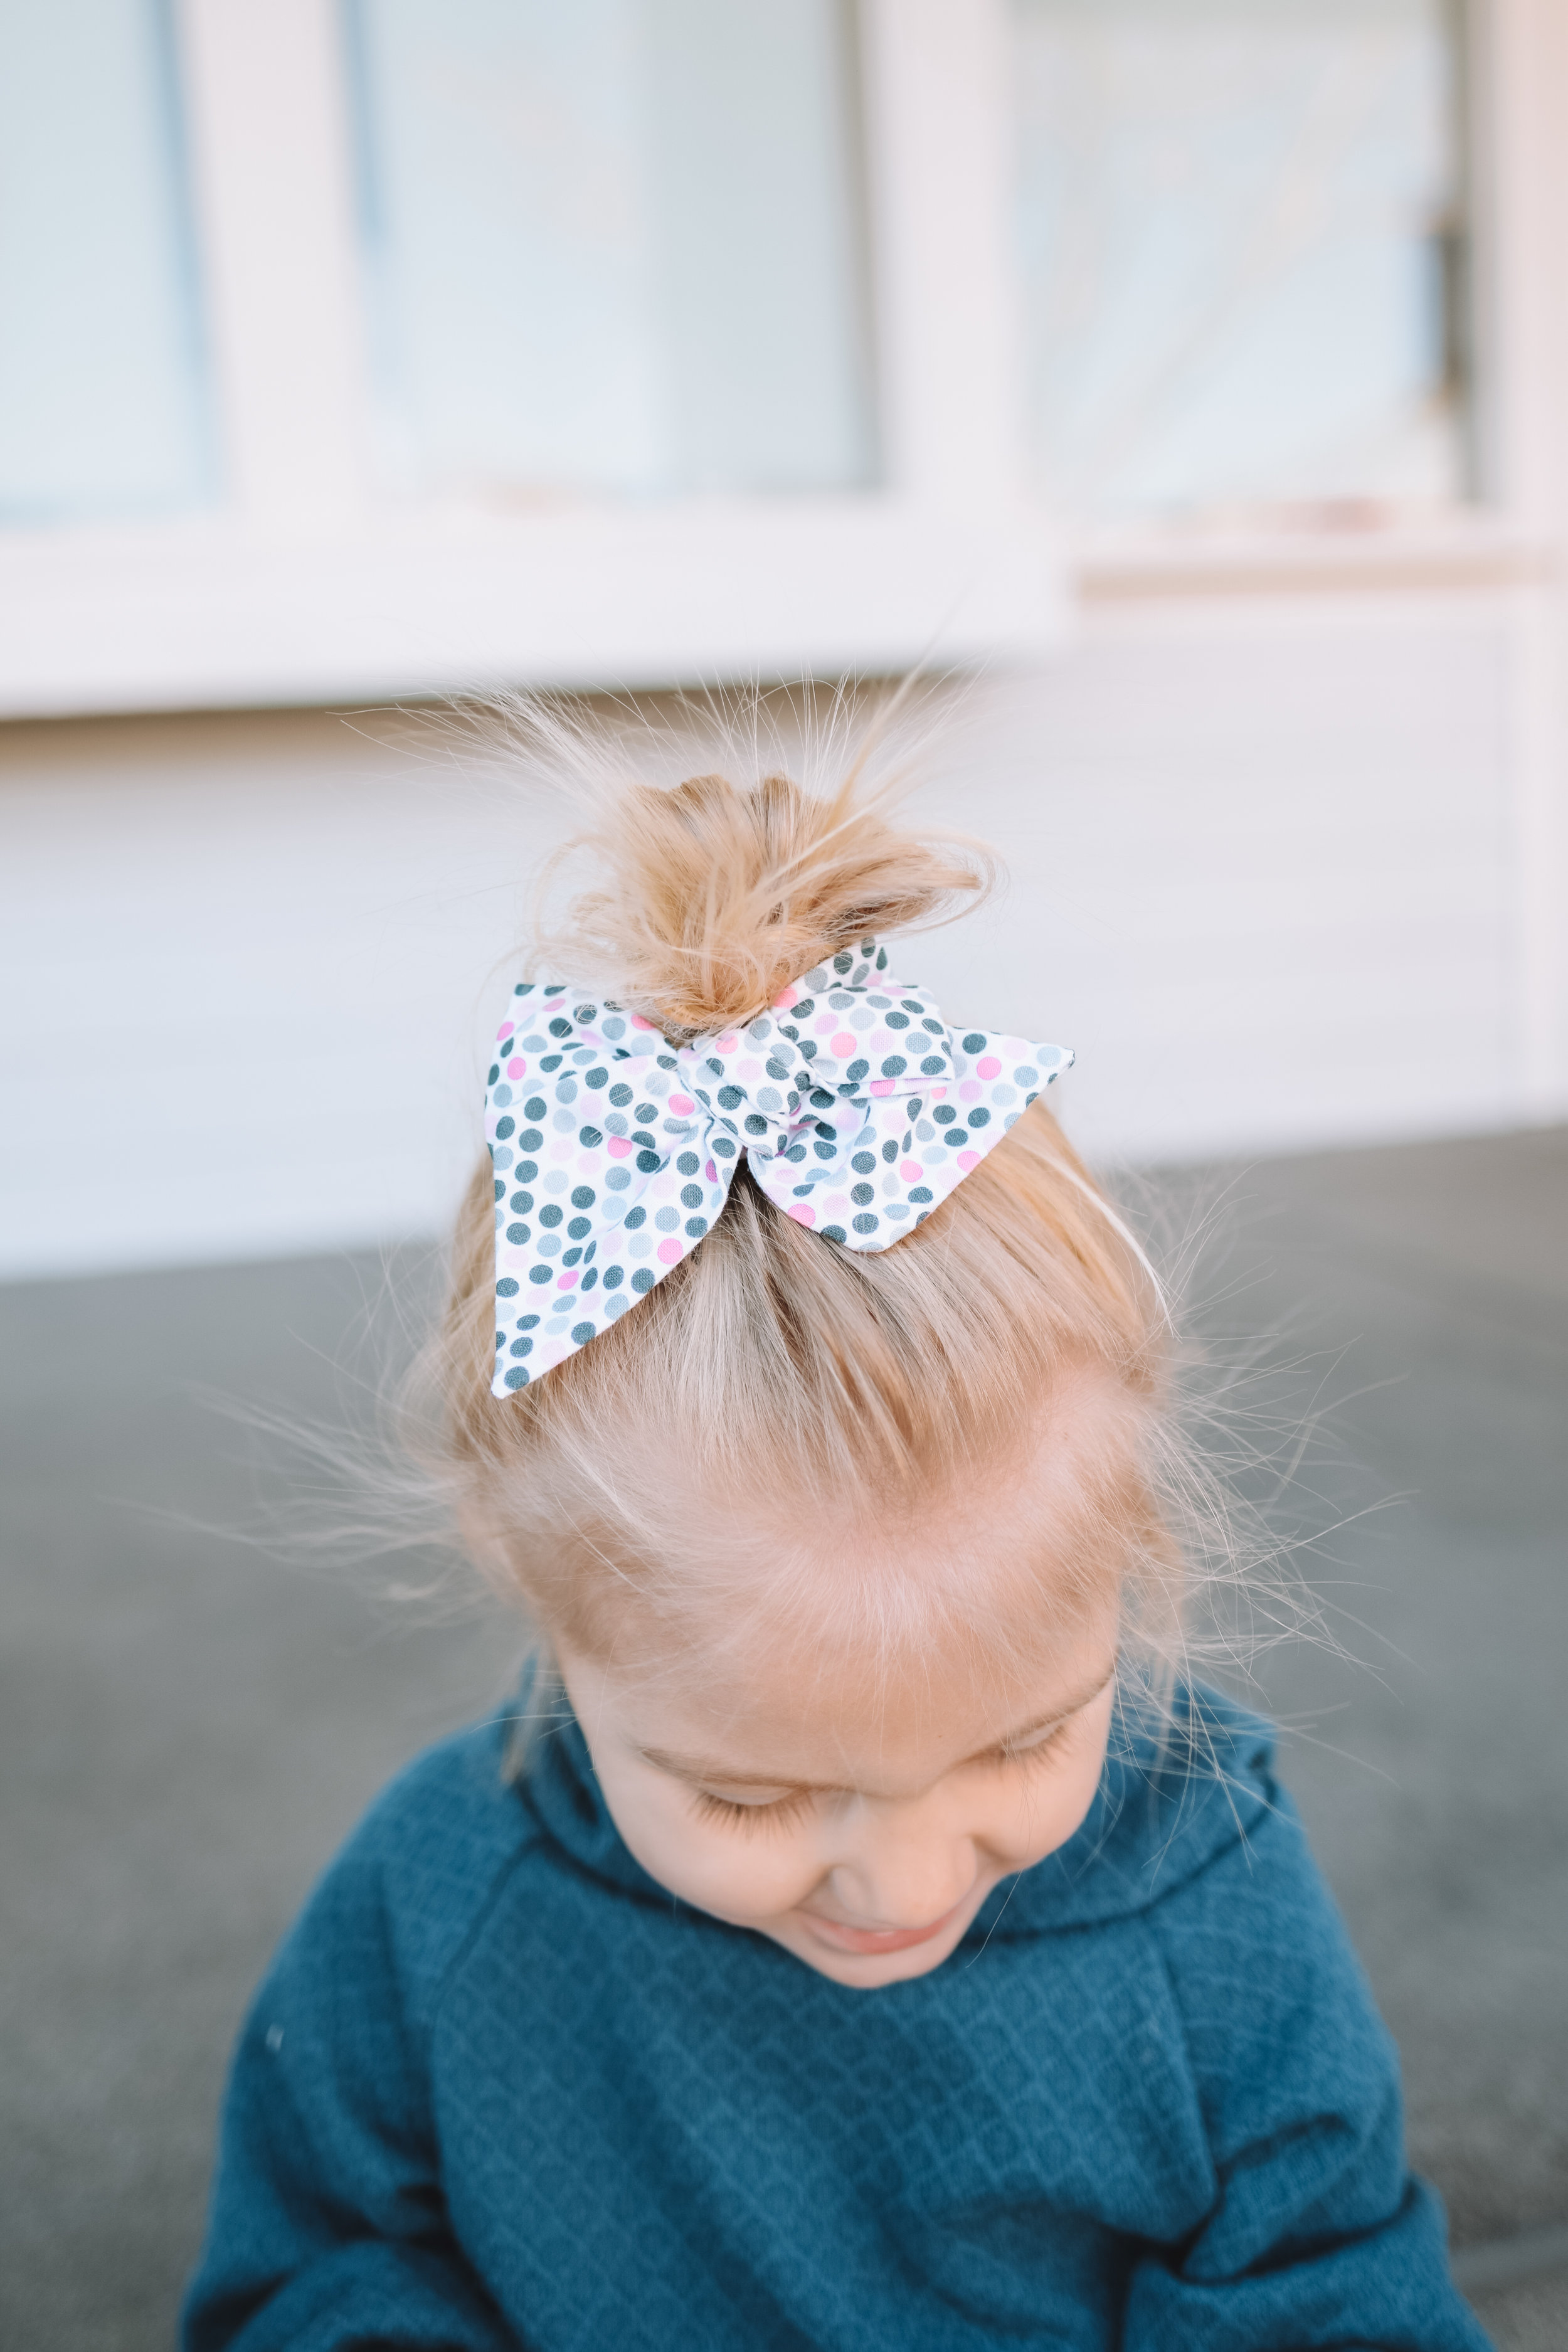 Cute Baby Kids Small Shop Clothes - The Overwhelmed Mommy Blogger